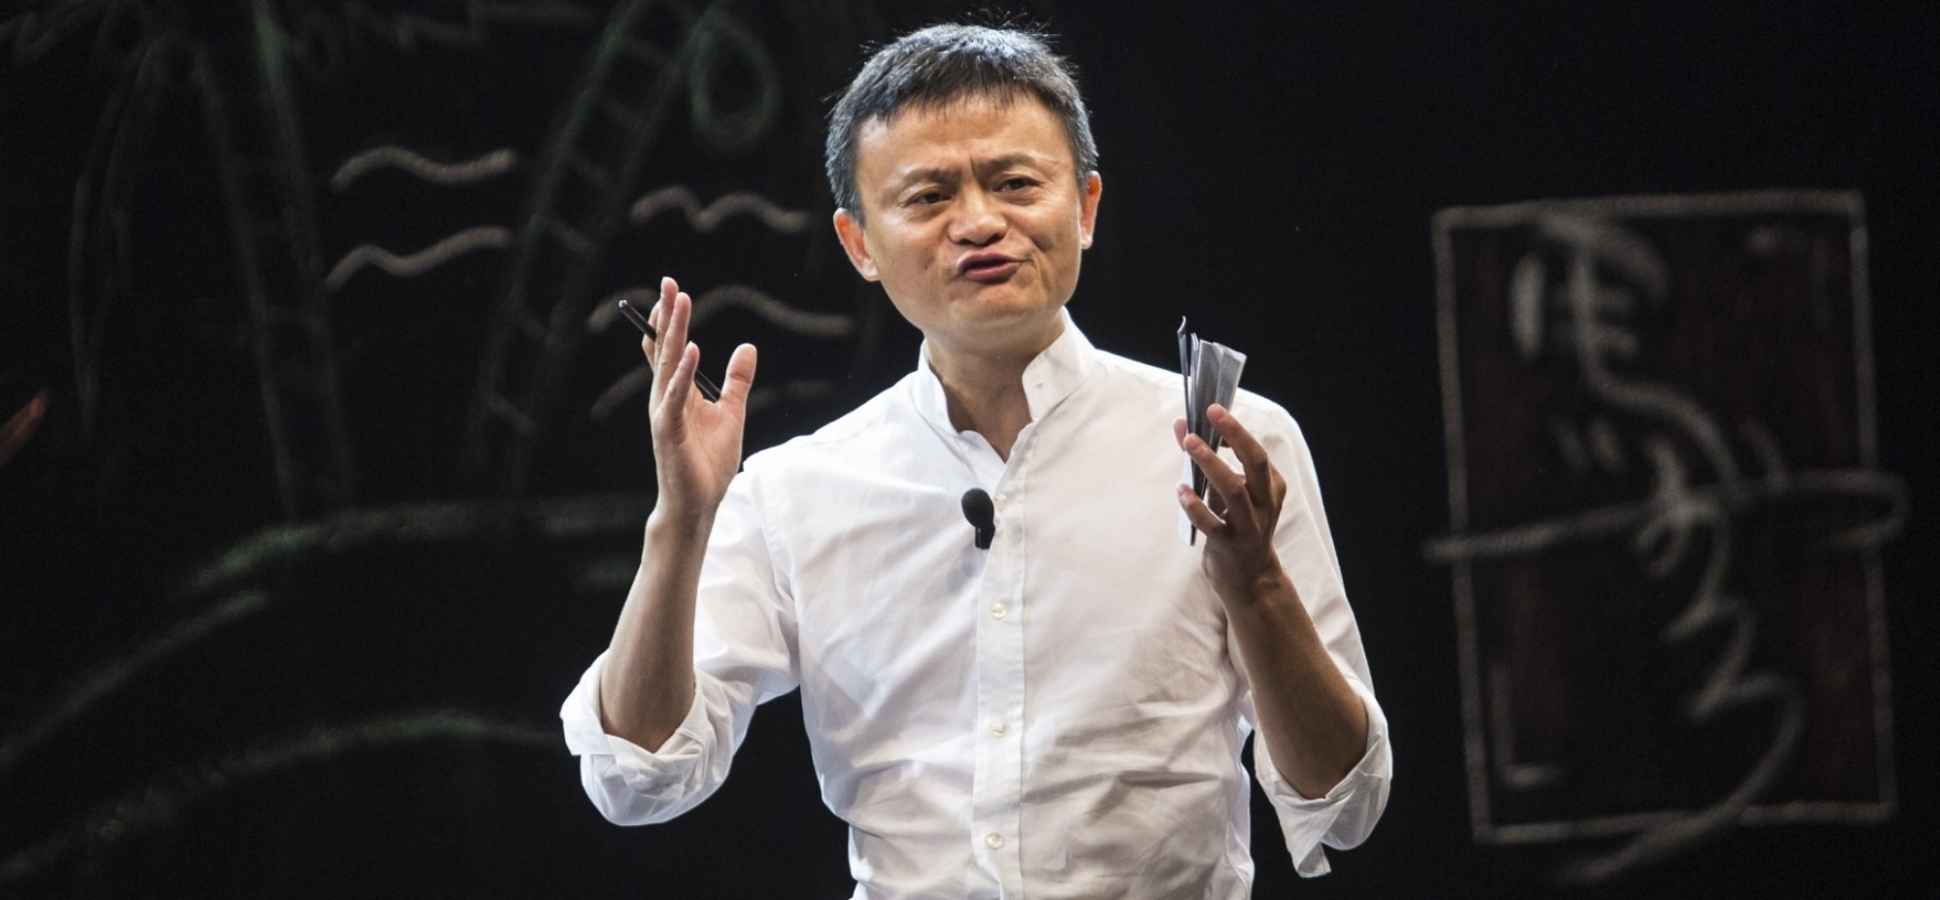 This Is the Secret of Success, According to Self-Made Billionaire Jack Ma (Hint: It Isn't IQ or EQ)